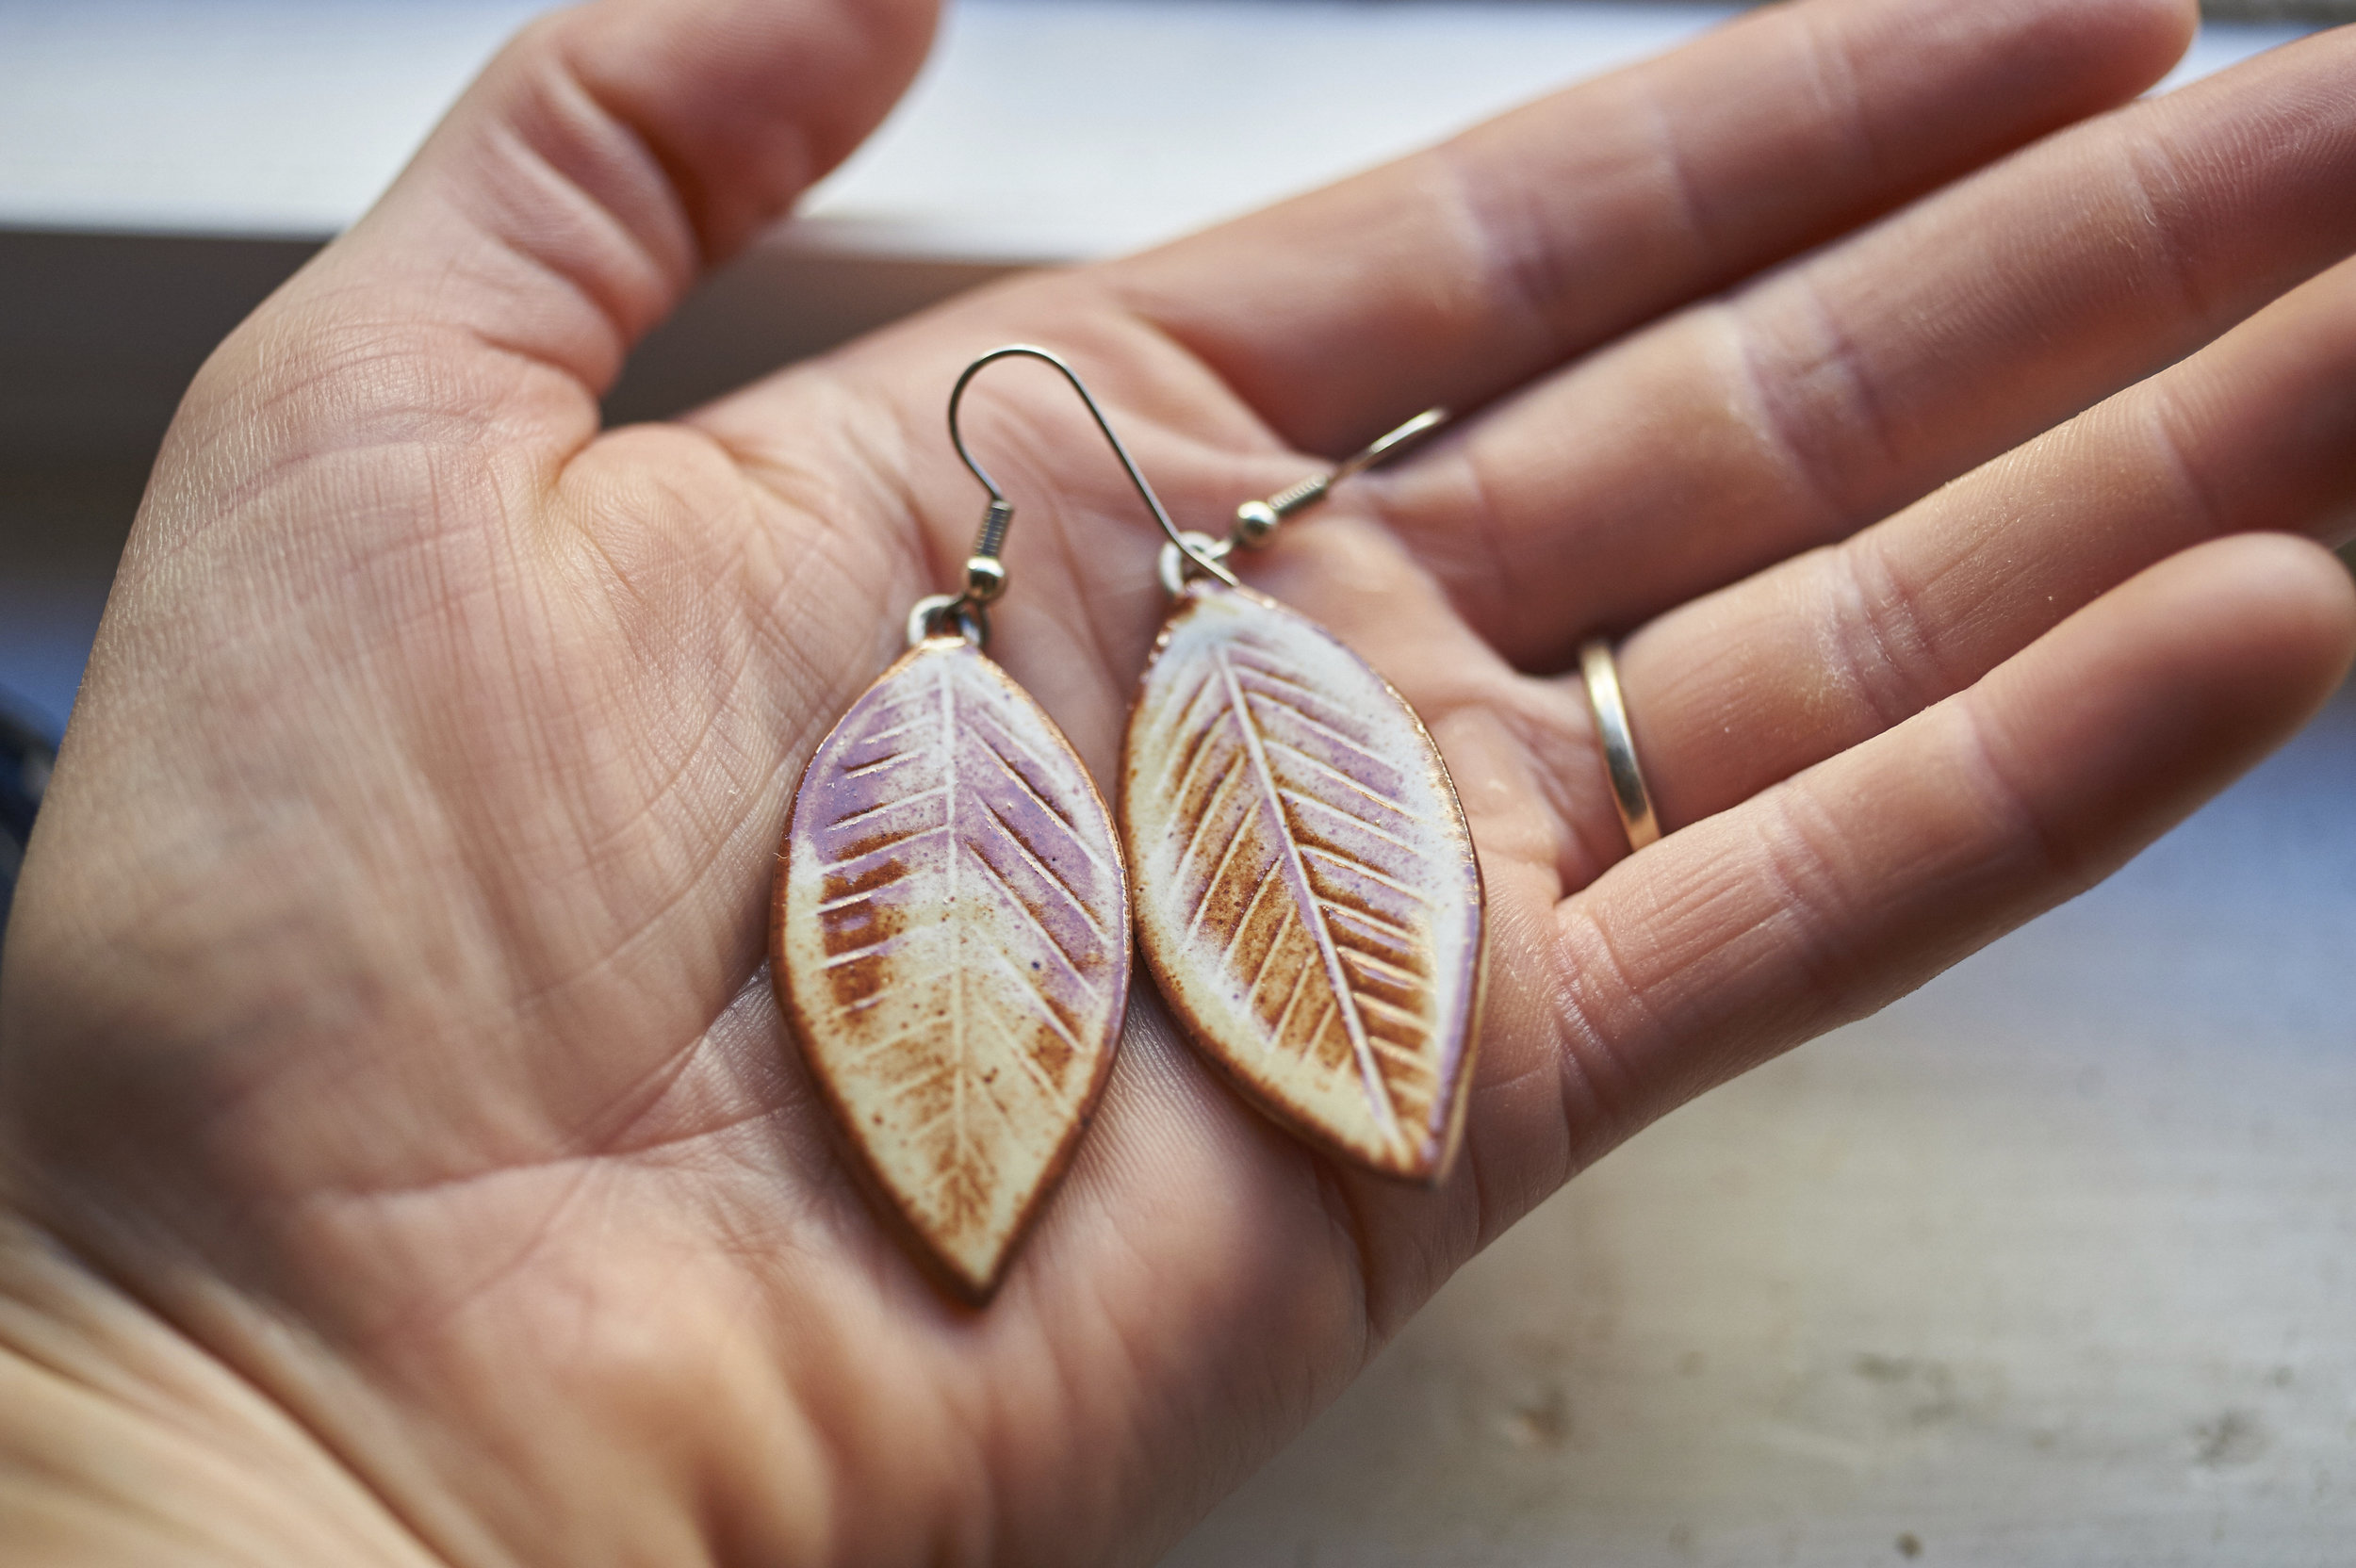 Bodie Leaf Earrings with high fire wire loops and stainless steel earring hooks